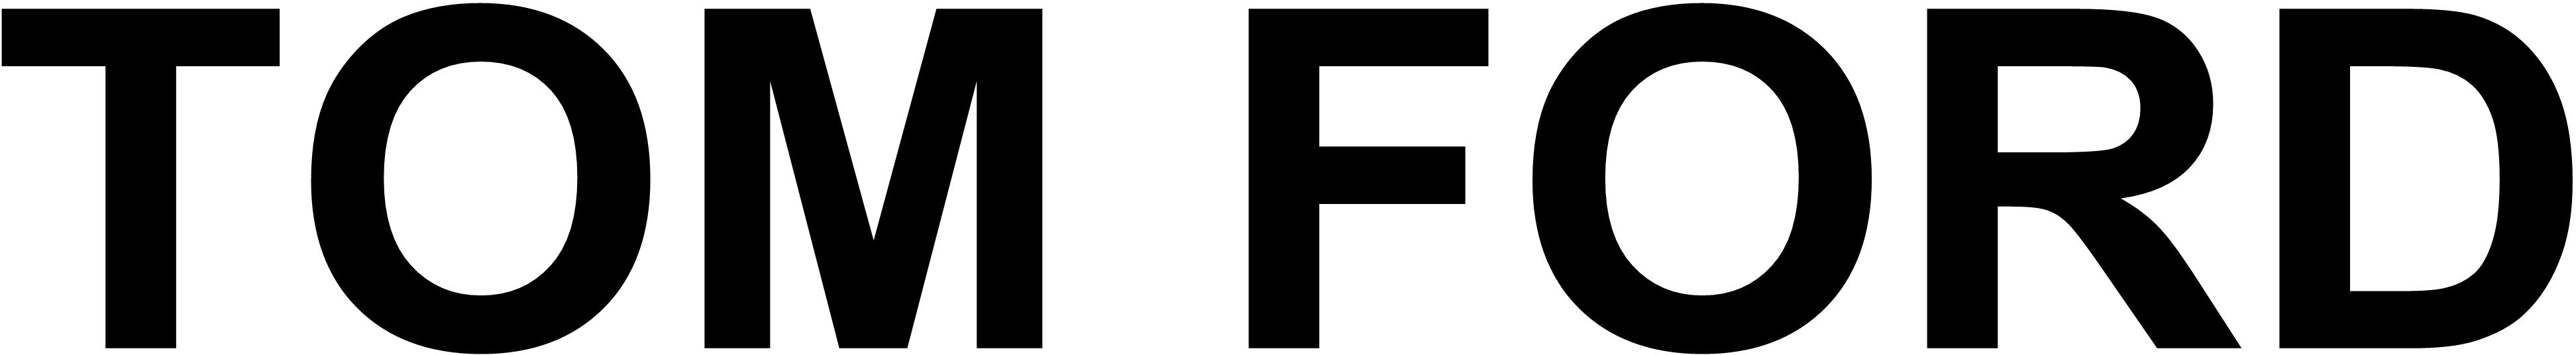 Tom Ford logo